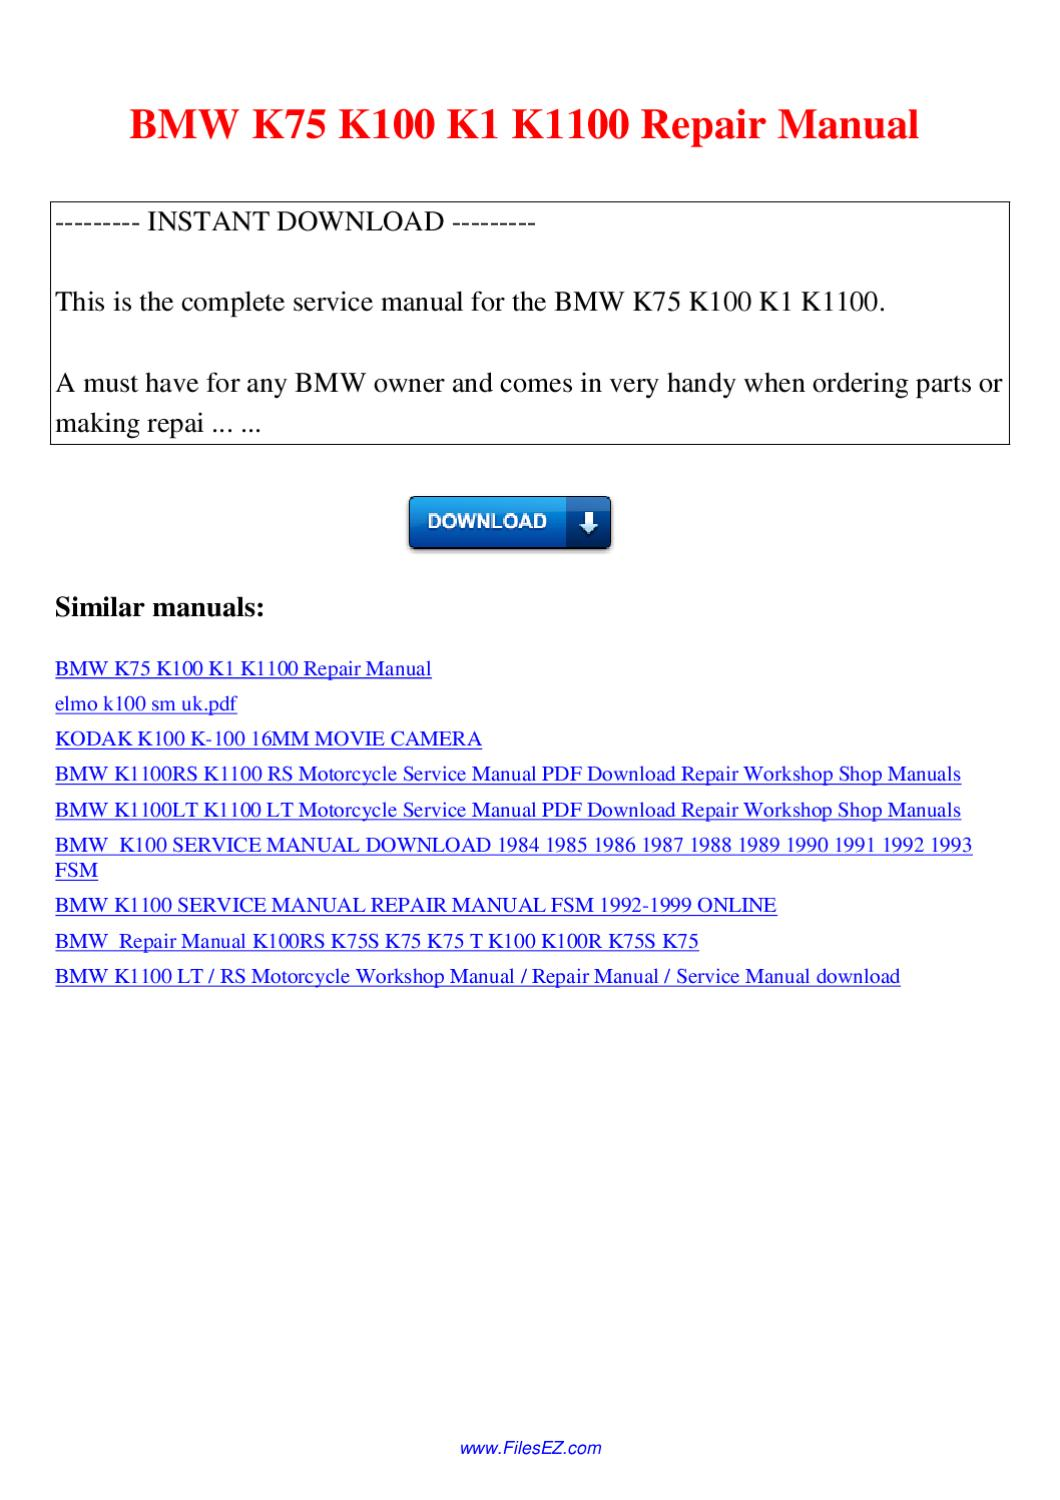 Bmw K100 Lt Service Manual 1985 Wiring Diagram Array K75 K1 K1100 Repair By Nana Hong Issuu Rh